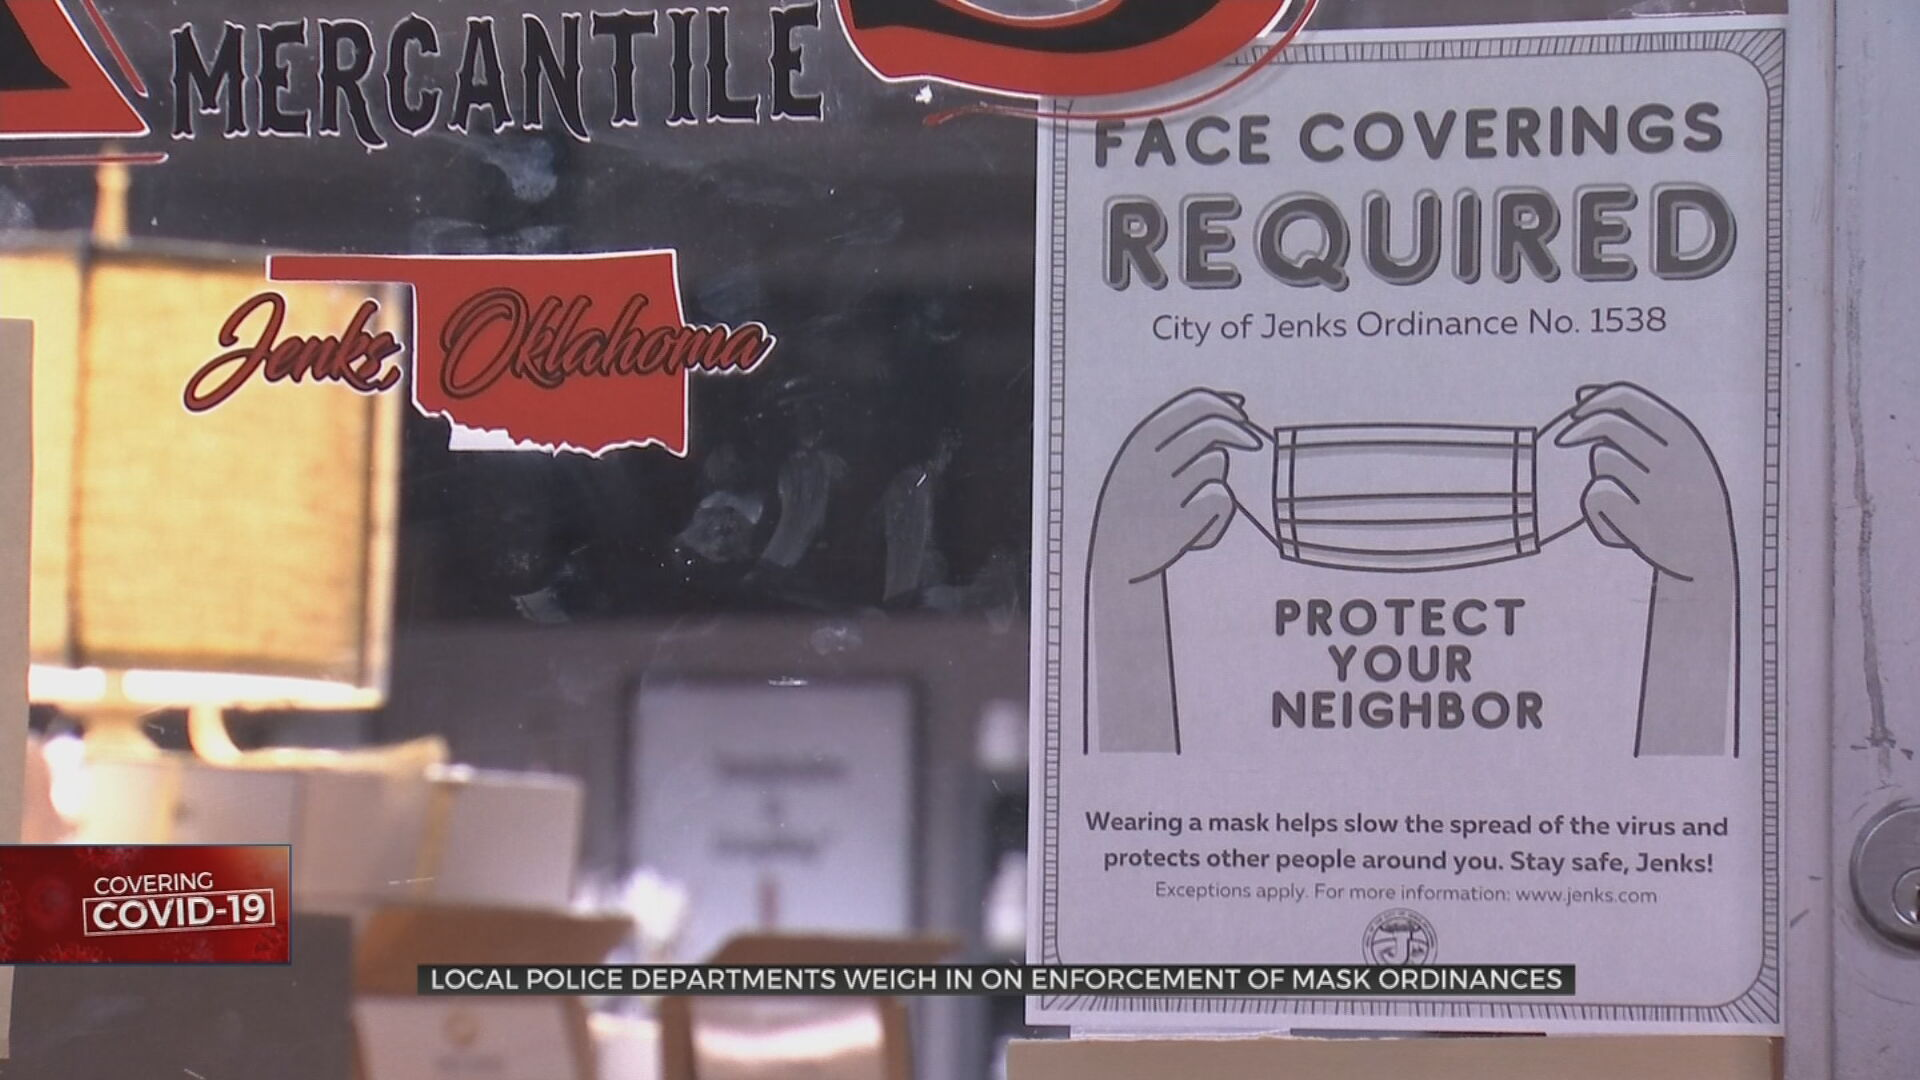 Local Police Departments Weigh In On Enforcement Of Mask Ordinances